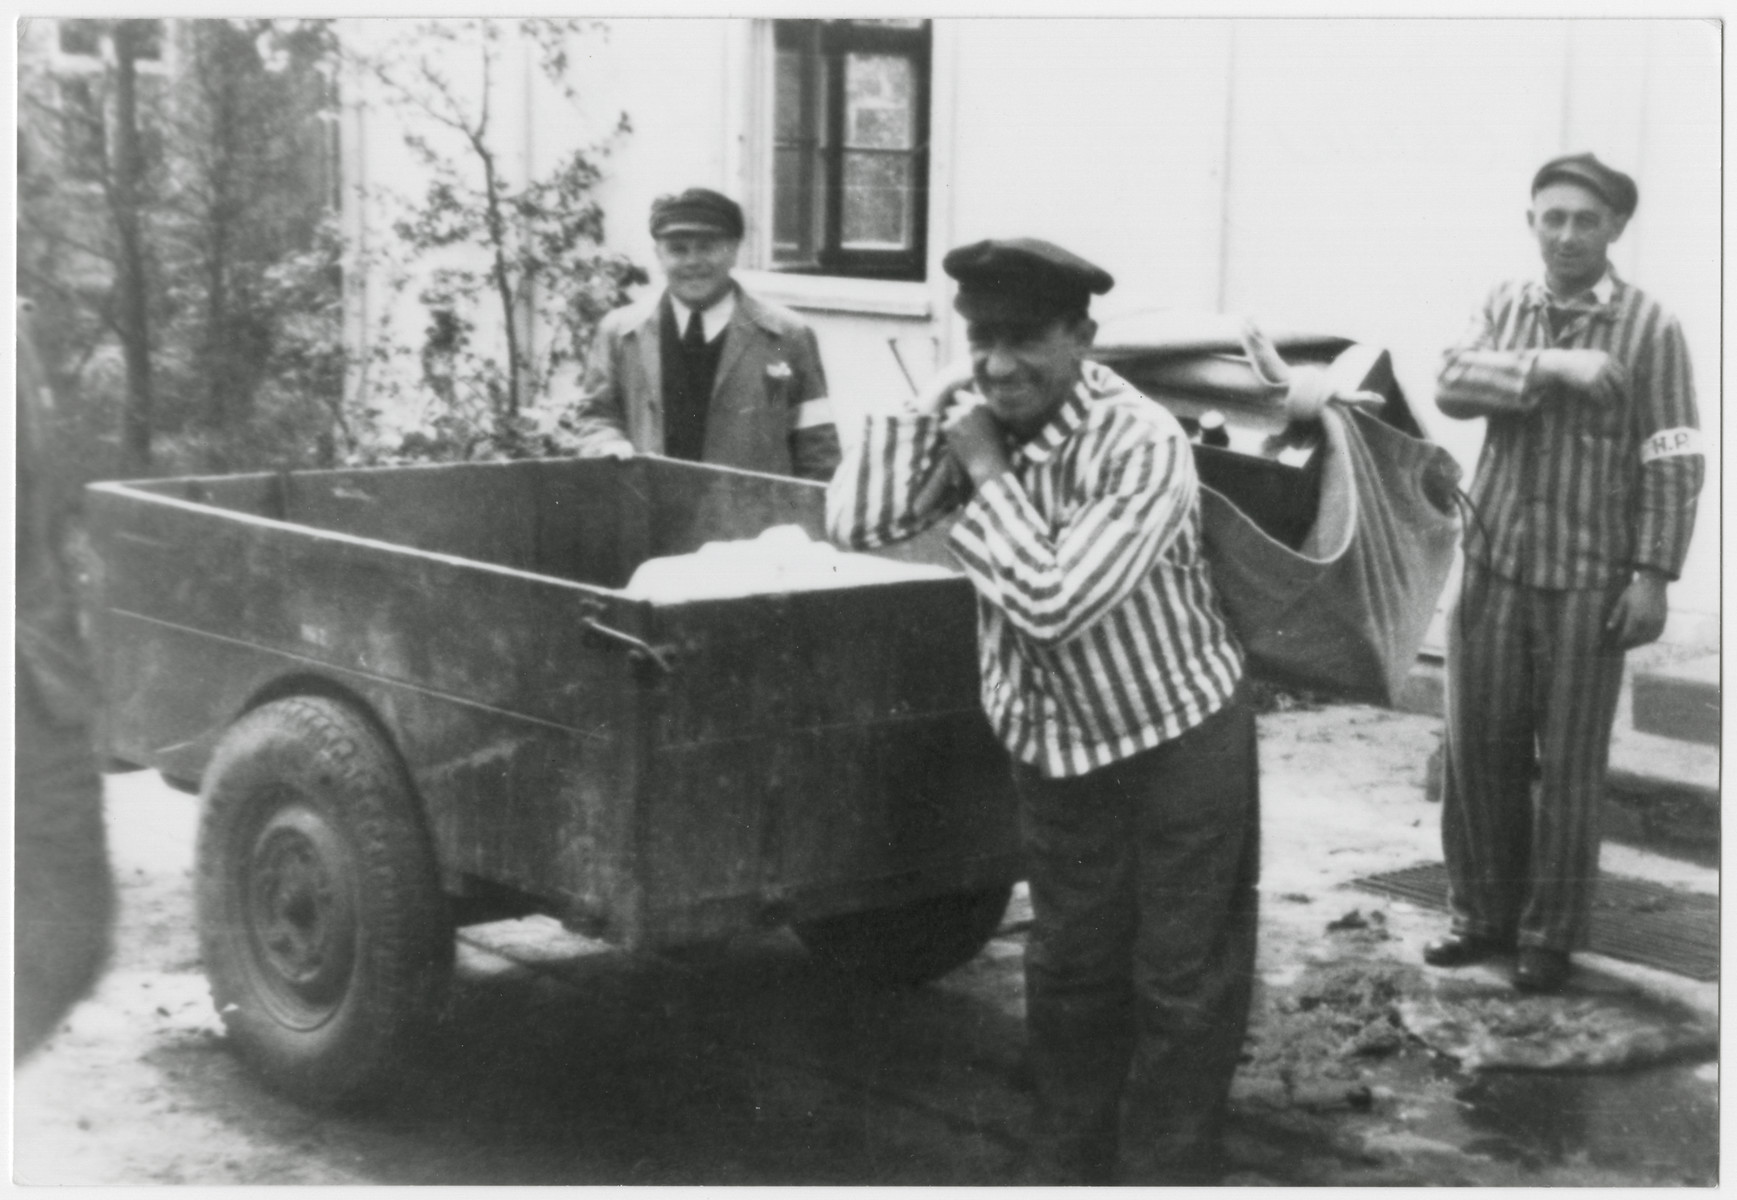 Survivors of the Dachau concentration camp haul electrical equipment in a sack.